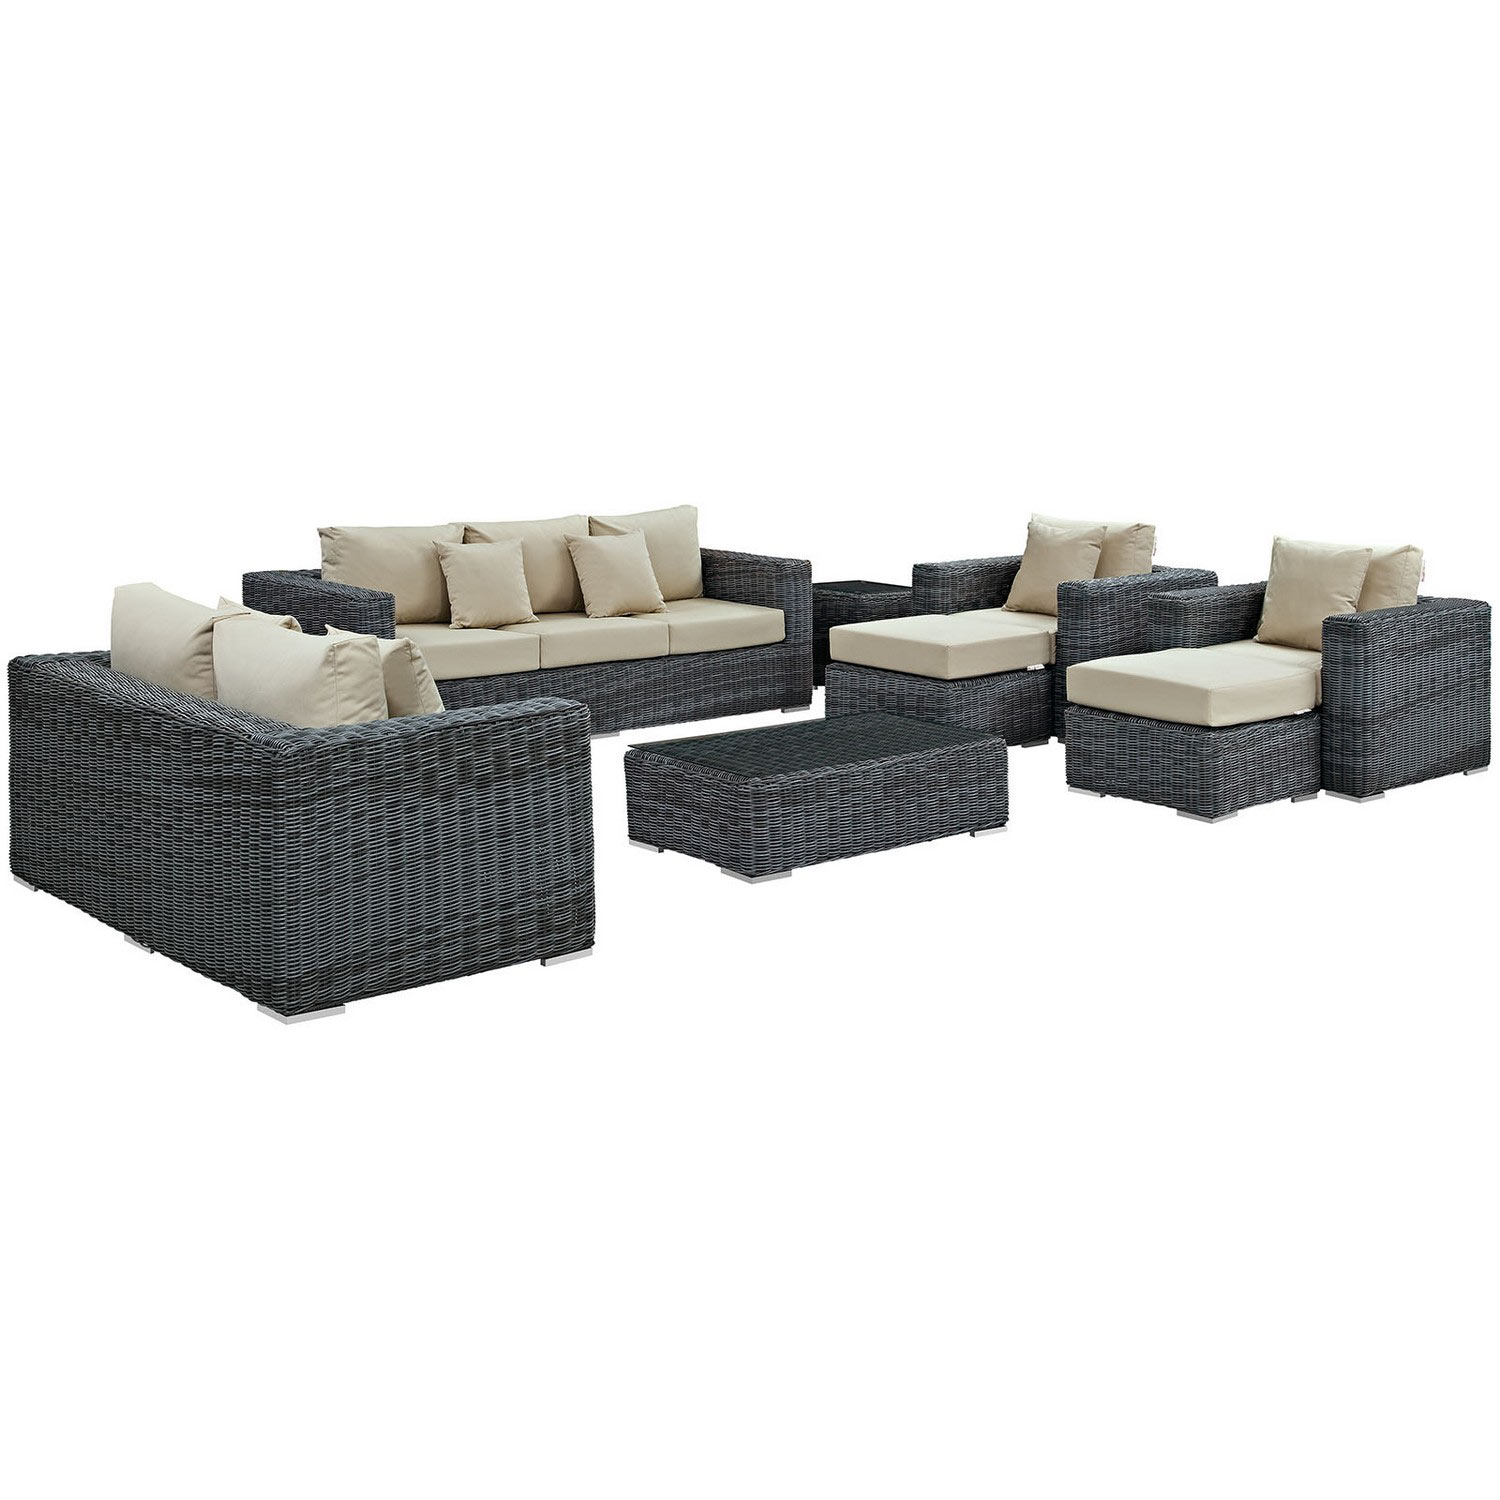 Modway Summon 9 Piece Outdoor Patio Sunbrella Sectional Set - Canvas Antique Beige